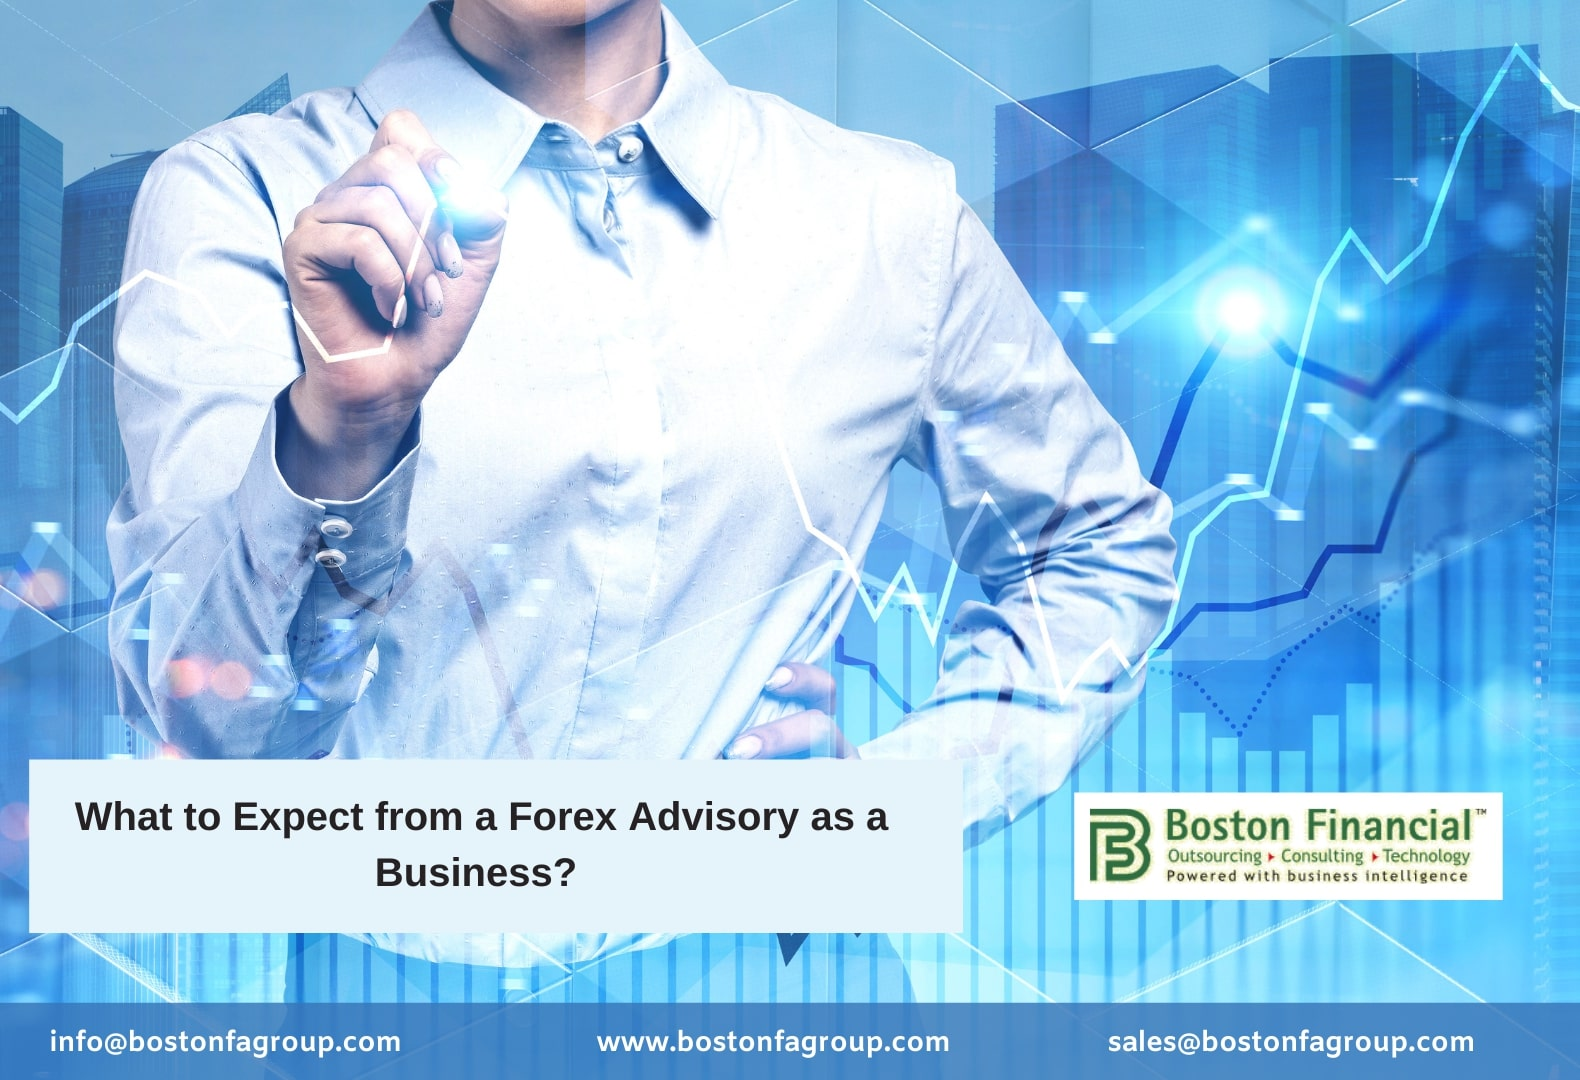 What to Expect from a Forex Advisory as a Business